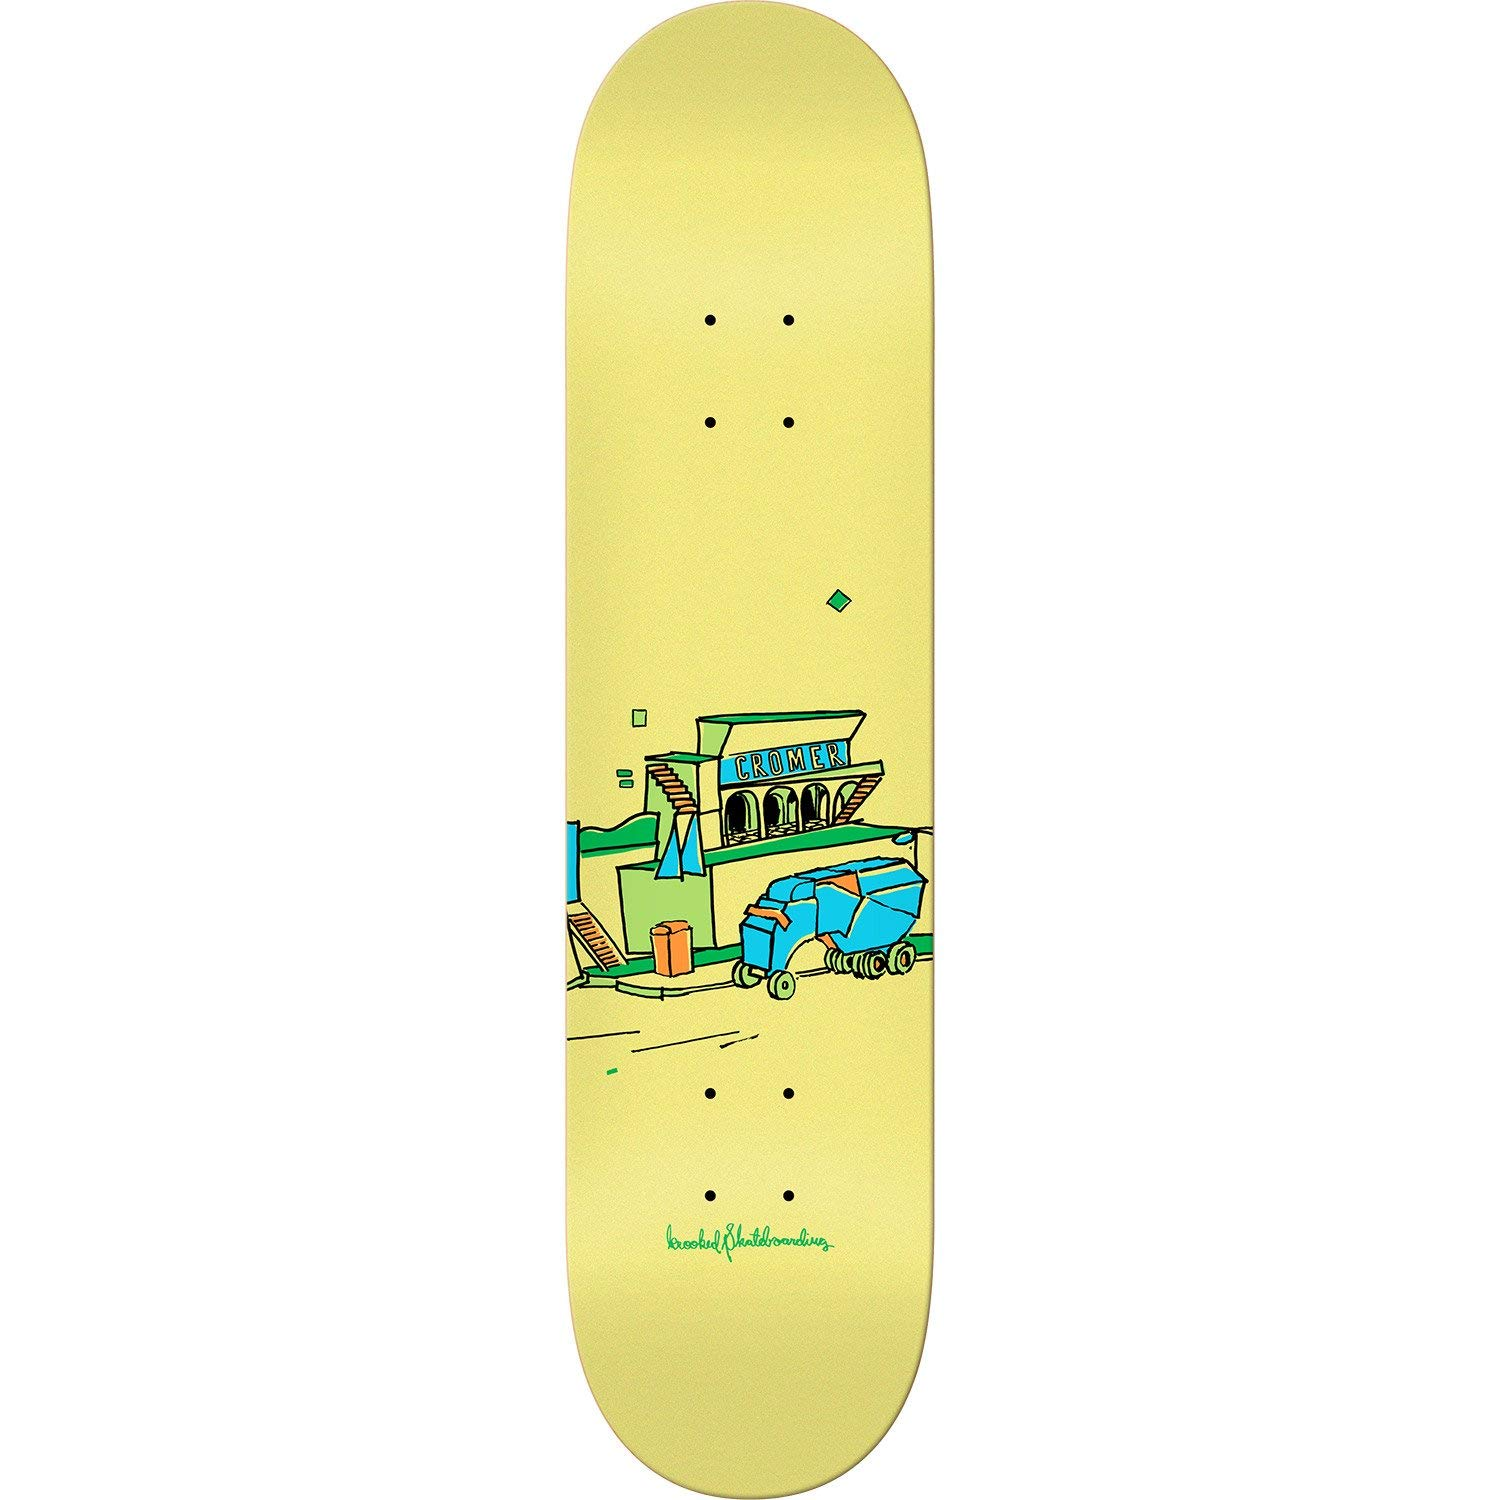 "Krooked Skateboards Brad Cromer Scenery Skateboard Deck - 8.06"" x 31.8"""